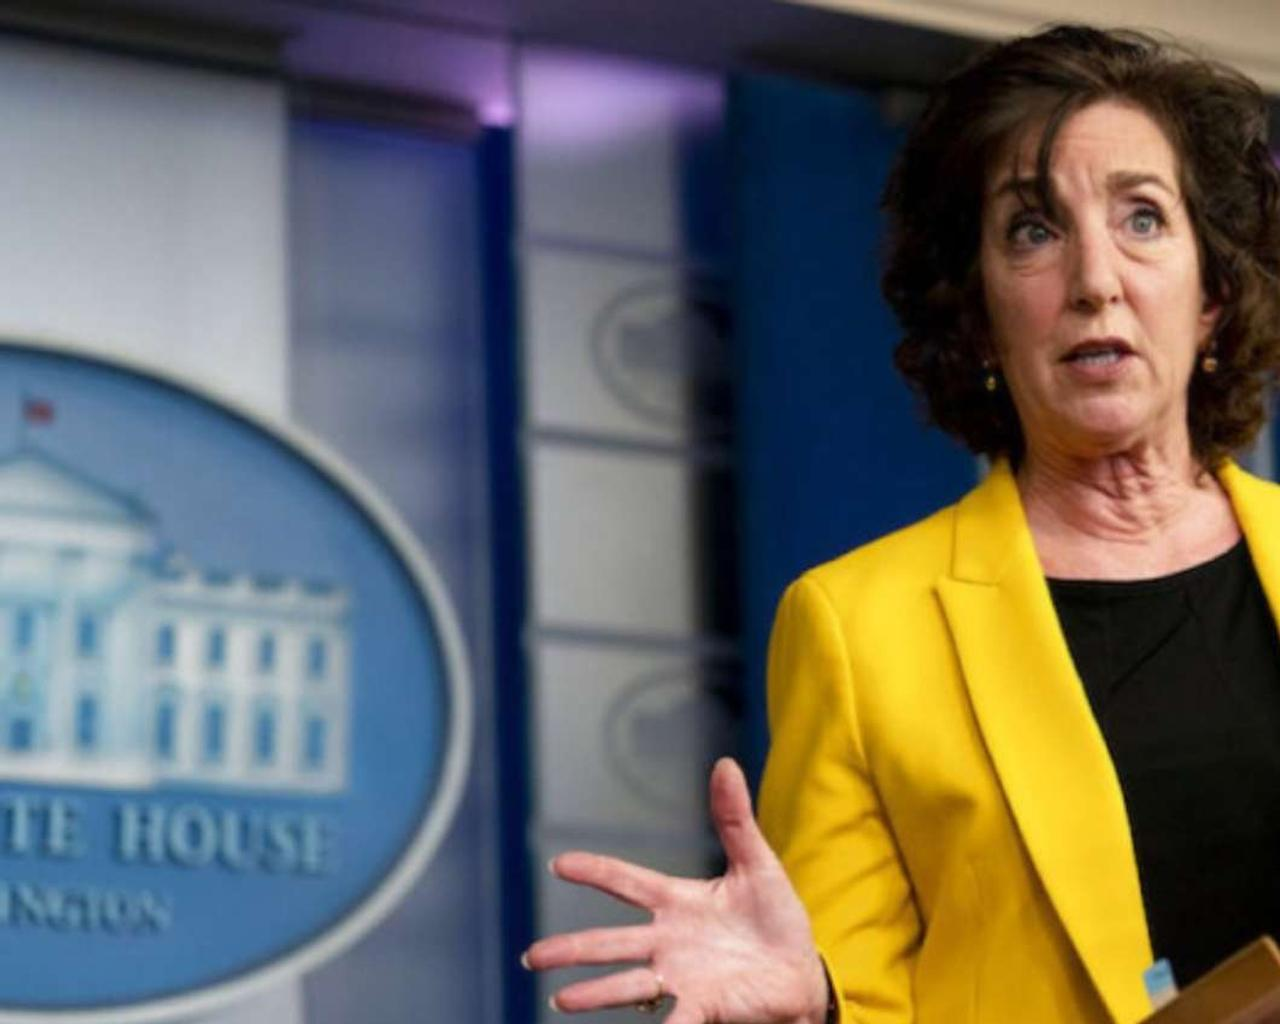 Roberta Jacobson will step down as coordinator of the southern border of the United States.